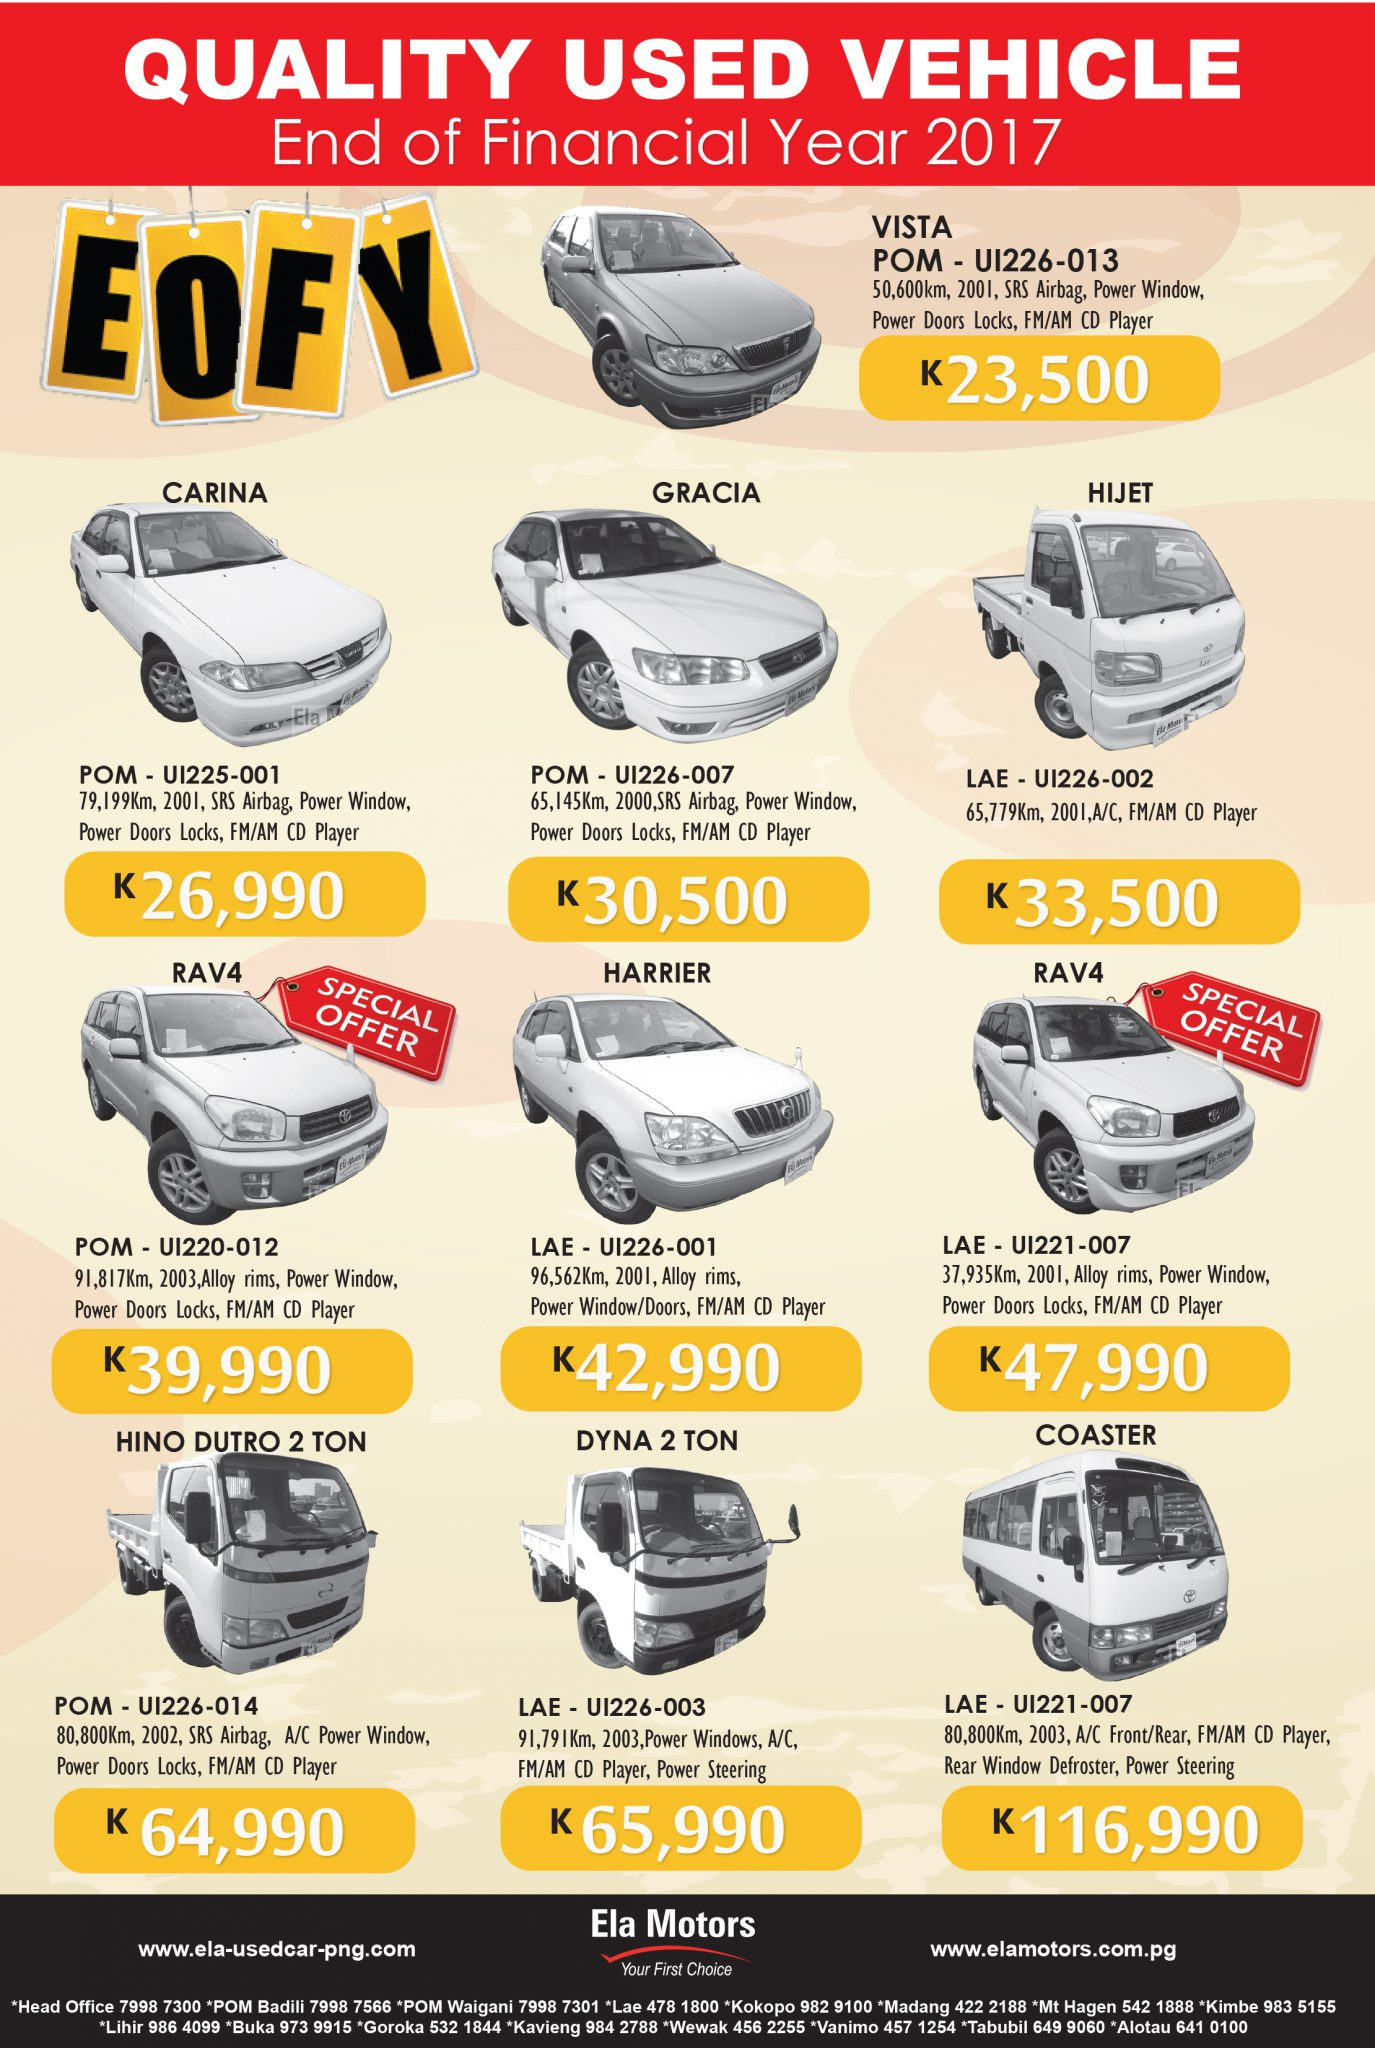 End Of Financial Year Specials.